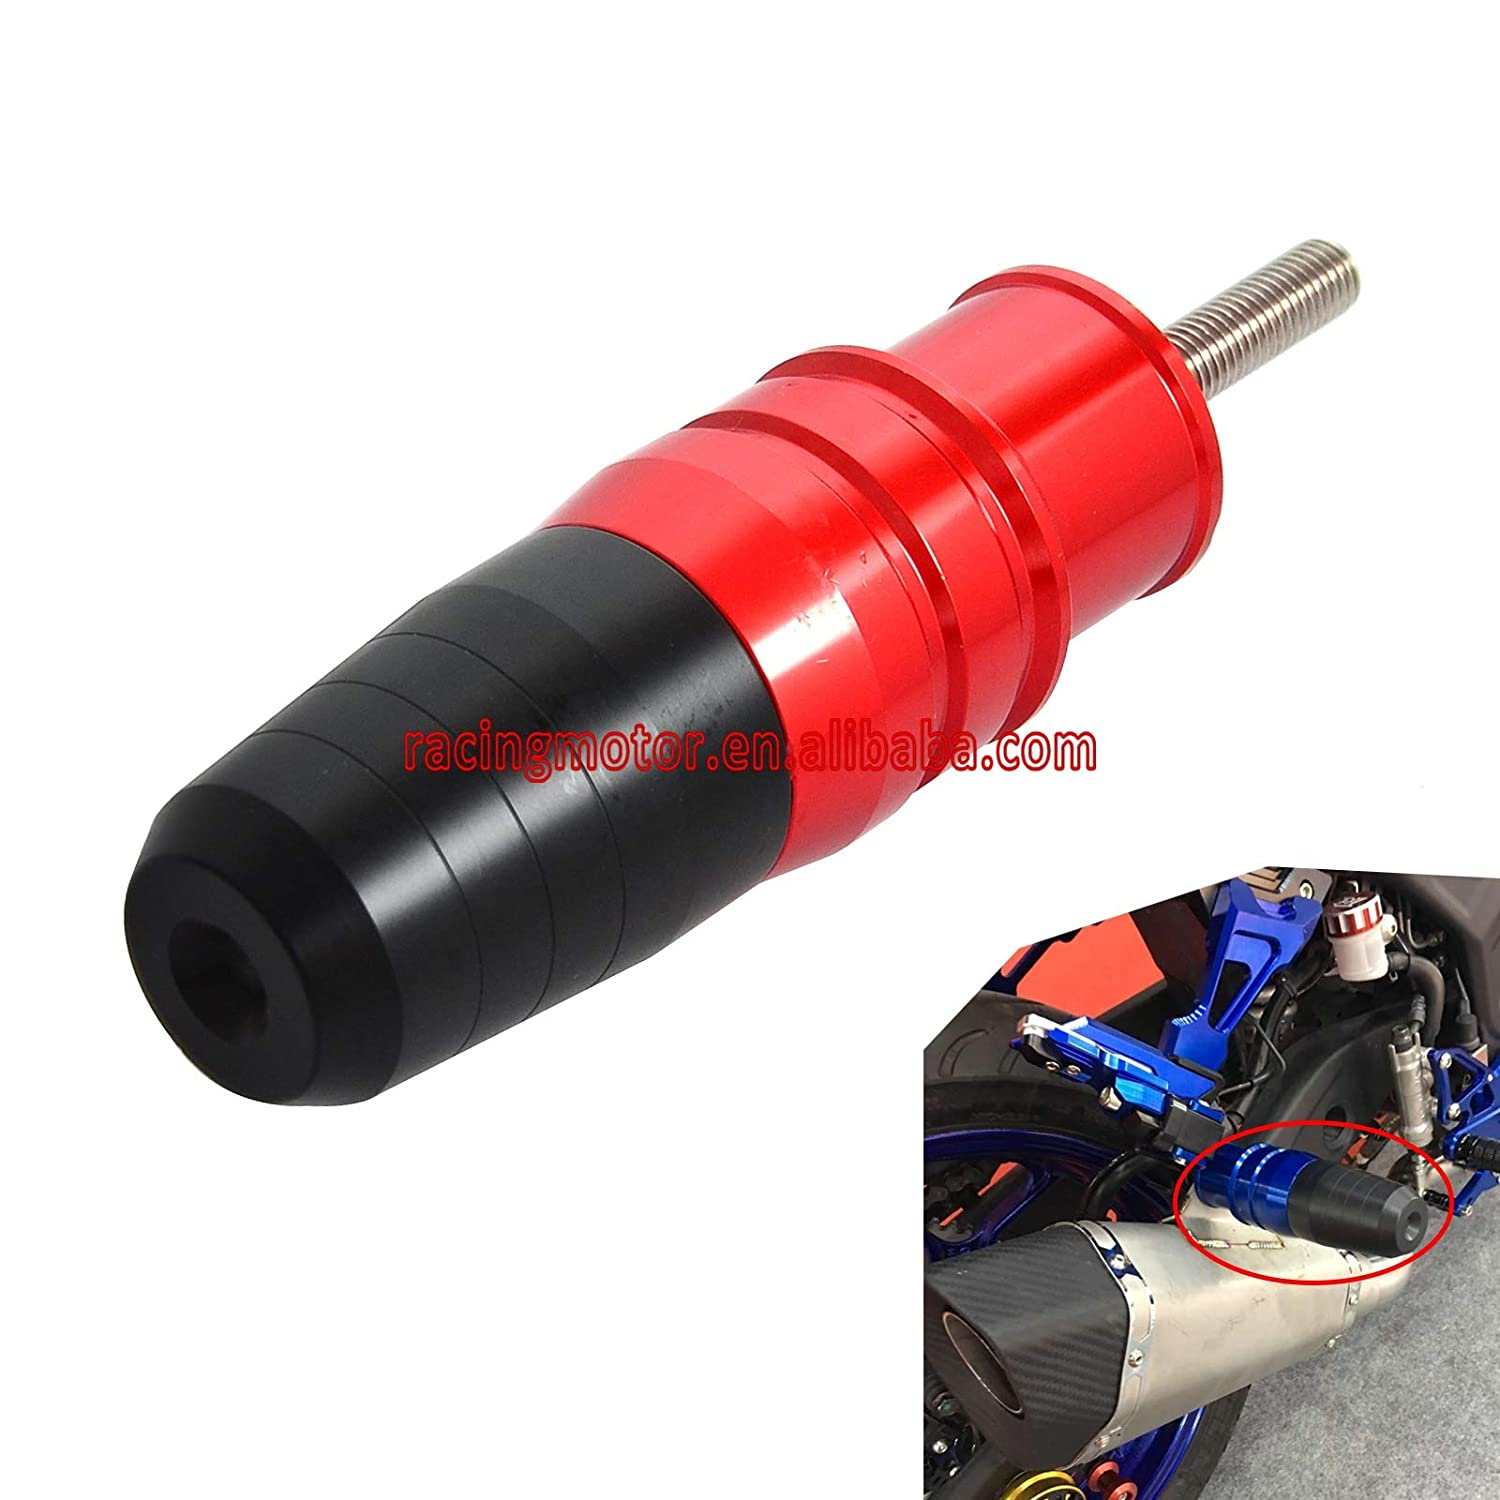 Automobiles /& Motorcycles Exhaust Slider Crash Pad Protector for Yamaha YZF-R3 Mt03 2015 2016 Yzfr3 Mt-03 Also Fit Honda Cb1100 2010-2016 Cb1100Ex 13-15